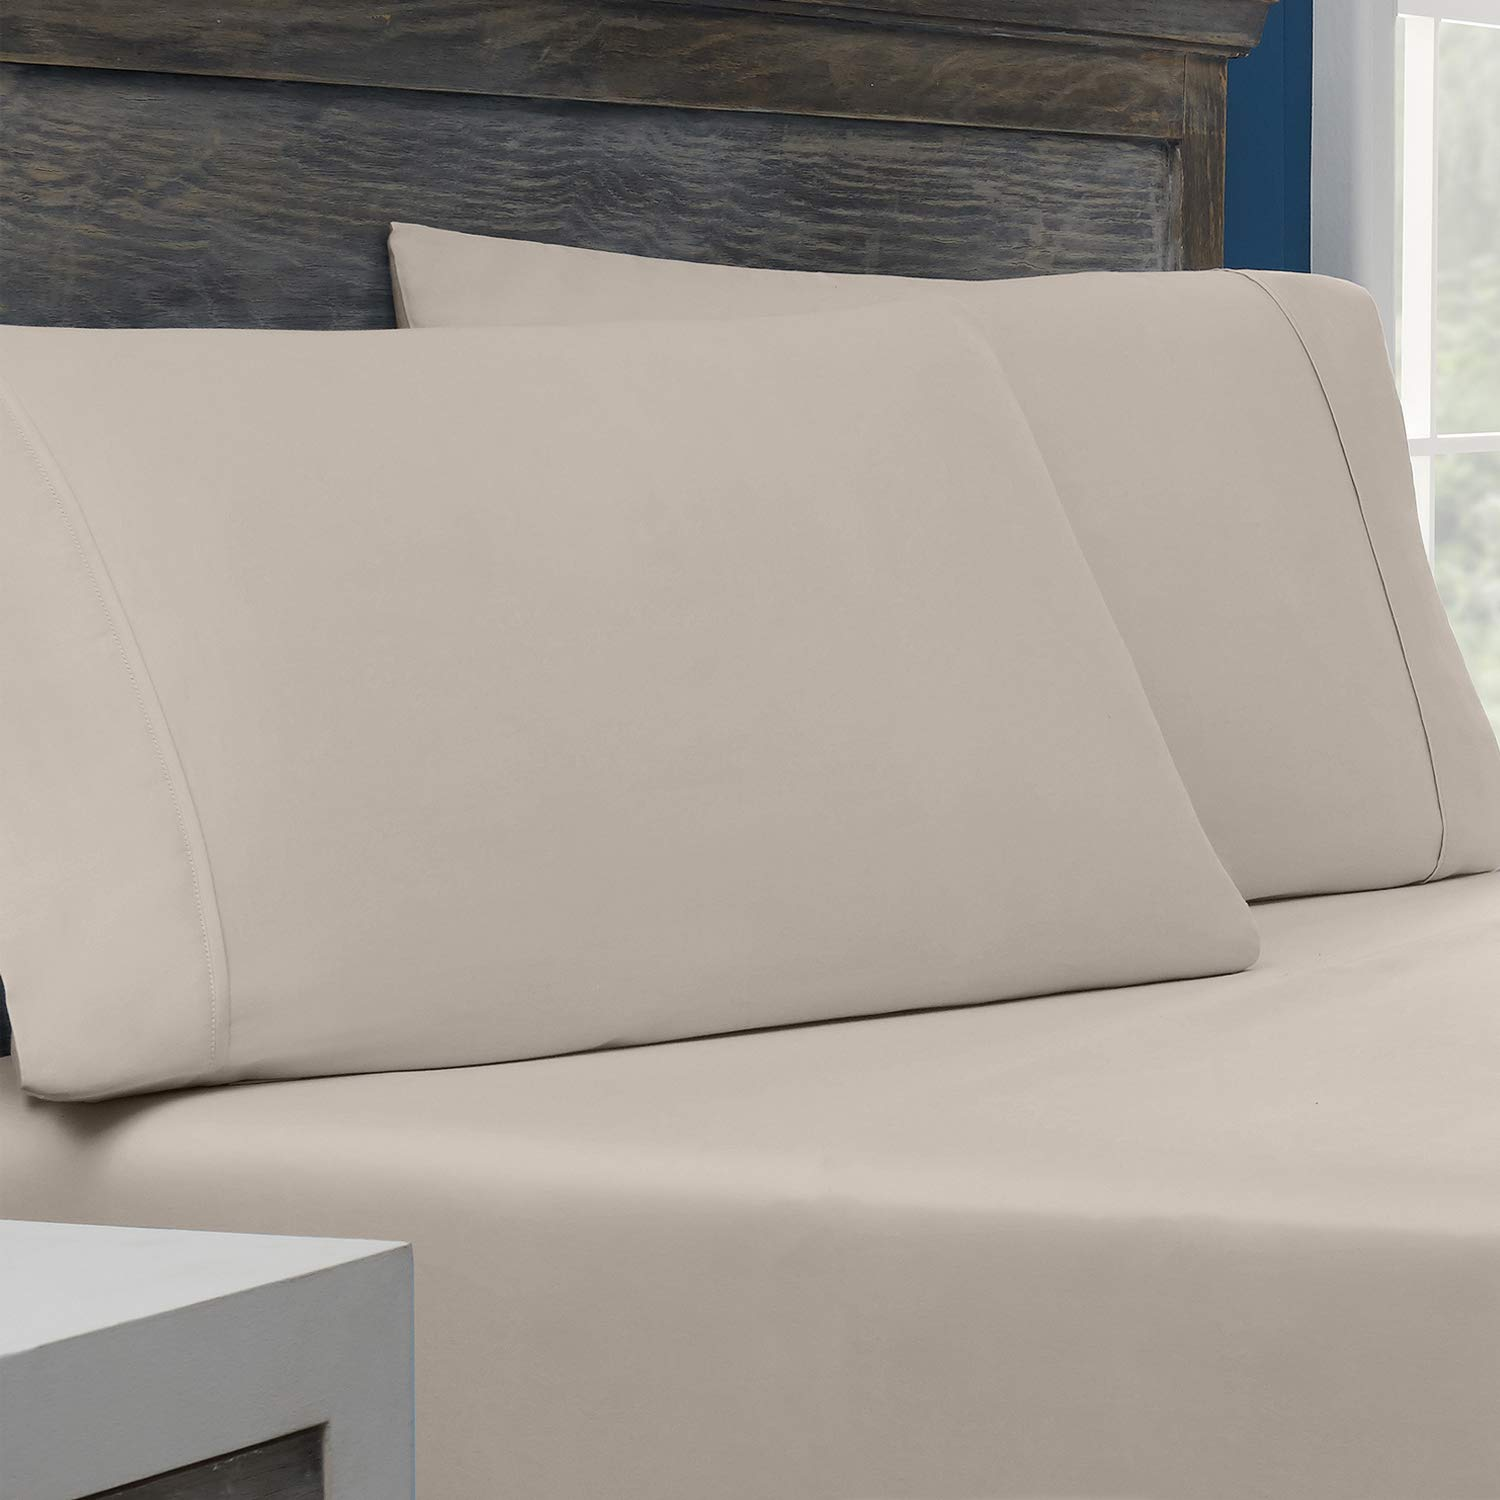 Columbia Tencel + Cotton Performance Pillowcase PK of 2 – Omni-Wick Moisture Wicking Stay Dry Technology – Naturally Soft, Cool, Breathable Temperature Regulating - King Pillowcases - 2PK, Pumice